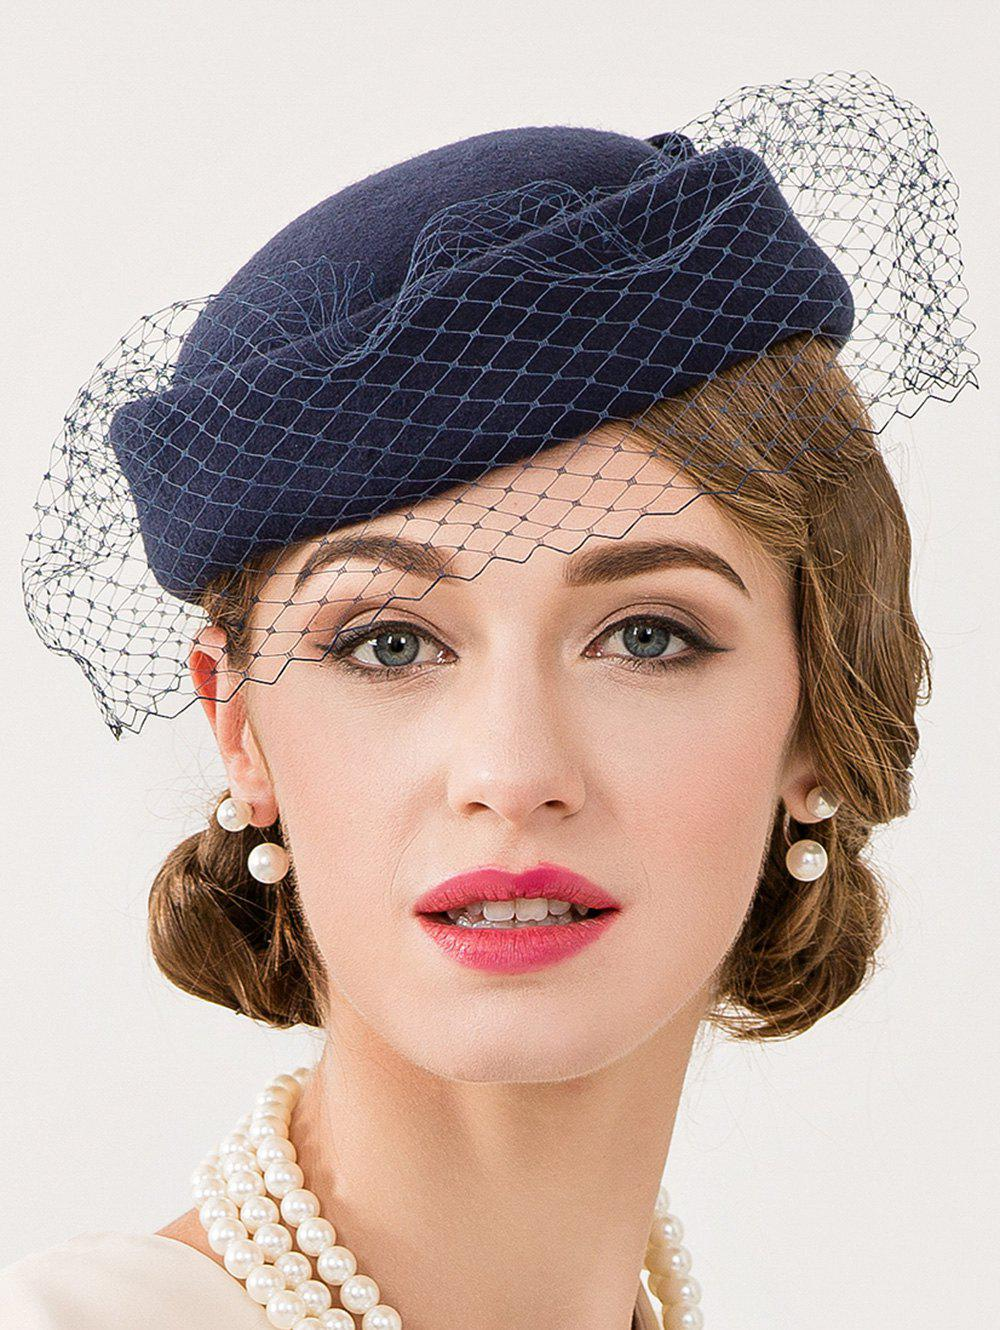 Cocktail Party Bowknot Veil Felt Pillbox HatACCESSORIES<br><br>Color: DEEP BLUE; Hat Type: Fedoras; Group: Adult; Gender: For Women; Style: Formal; Pattern Type: Solid; Material: Wool; Circumference (CM): 53CM-57CM; Weight: 1.411kg; Package Contents: 1 x Hat;